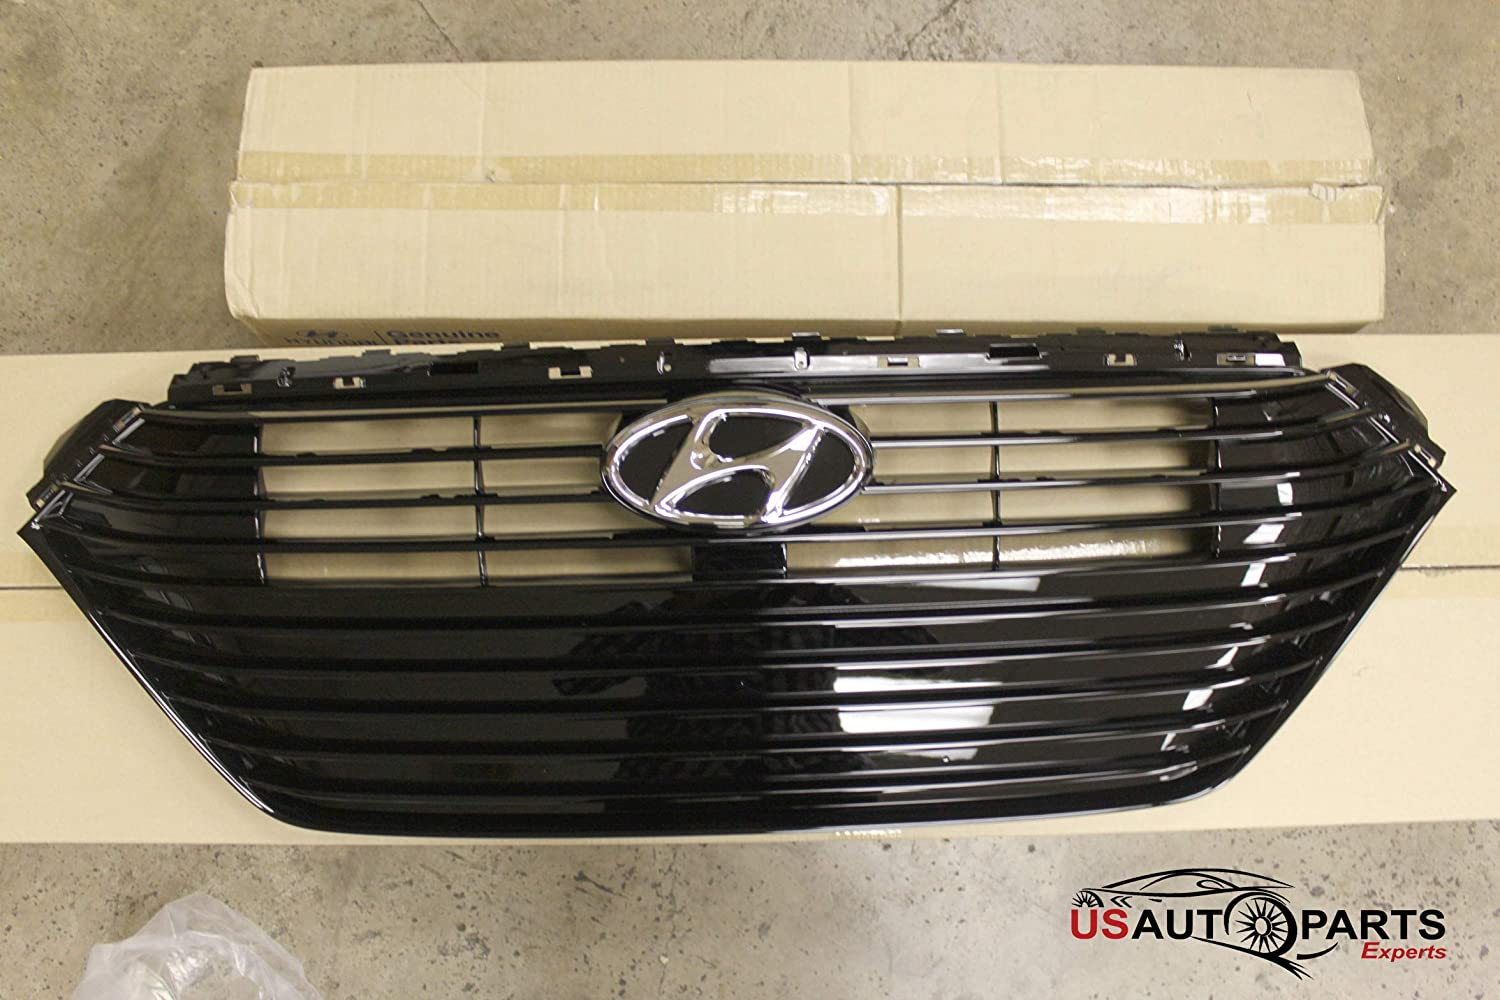 New Front Bumper Grille Grill Center 86350J0020 For Hyundai Accent 2018 2019